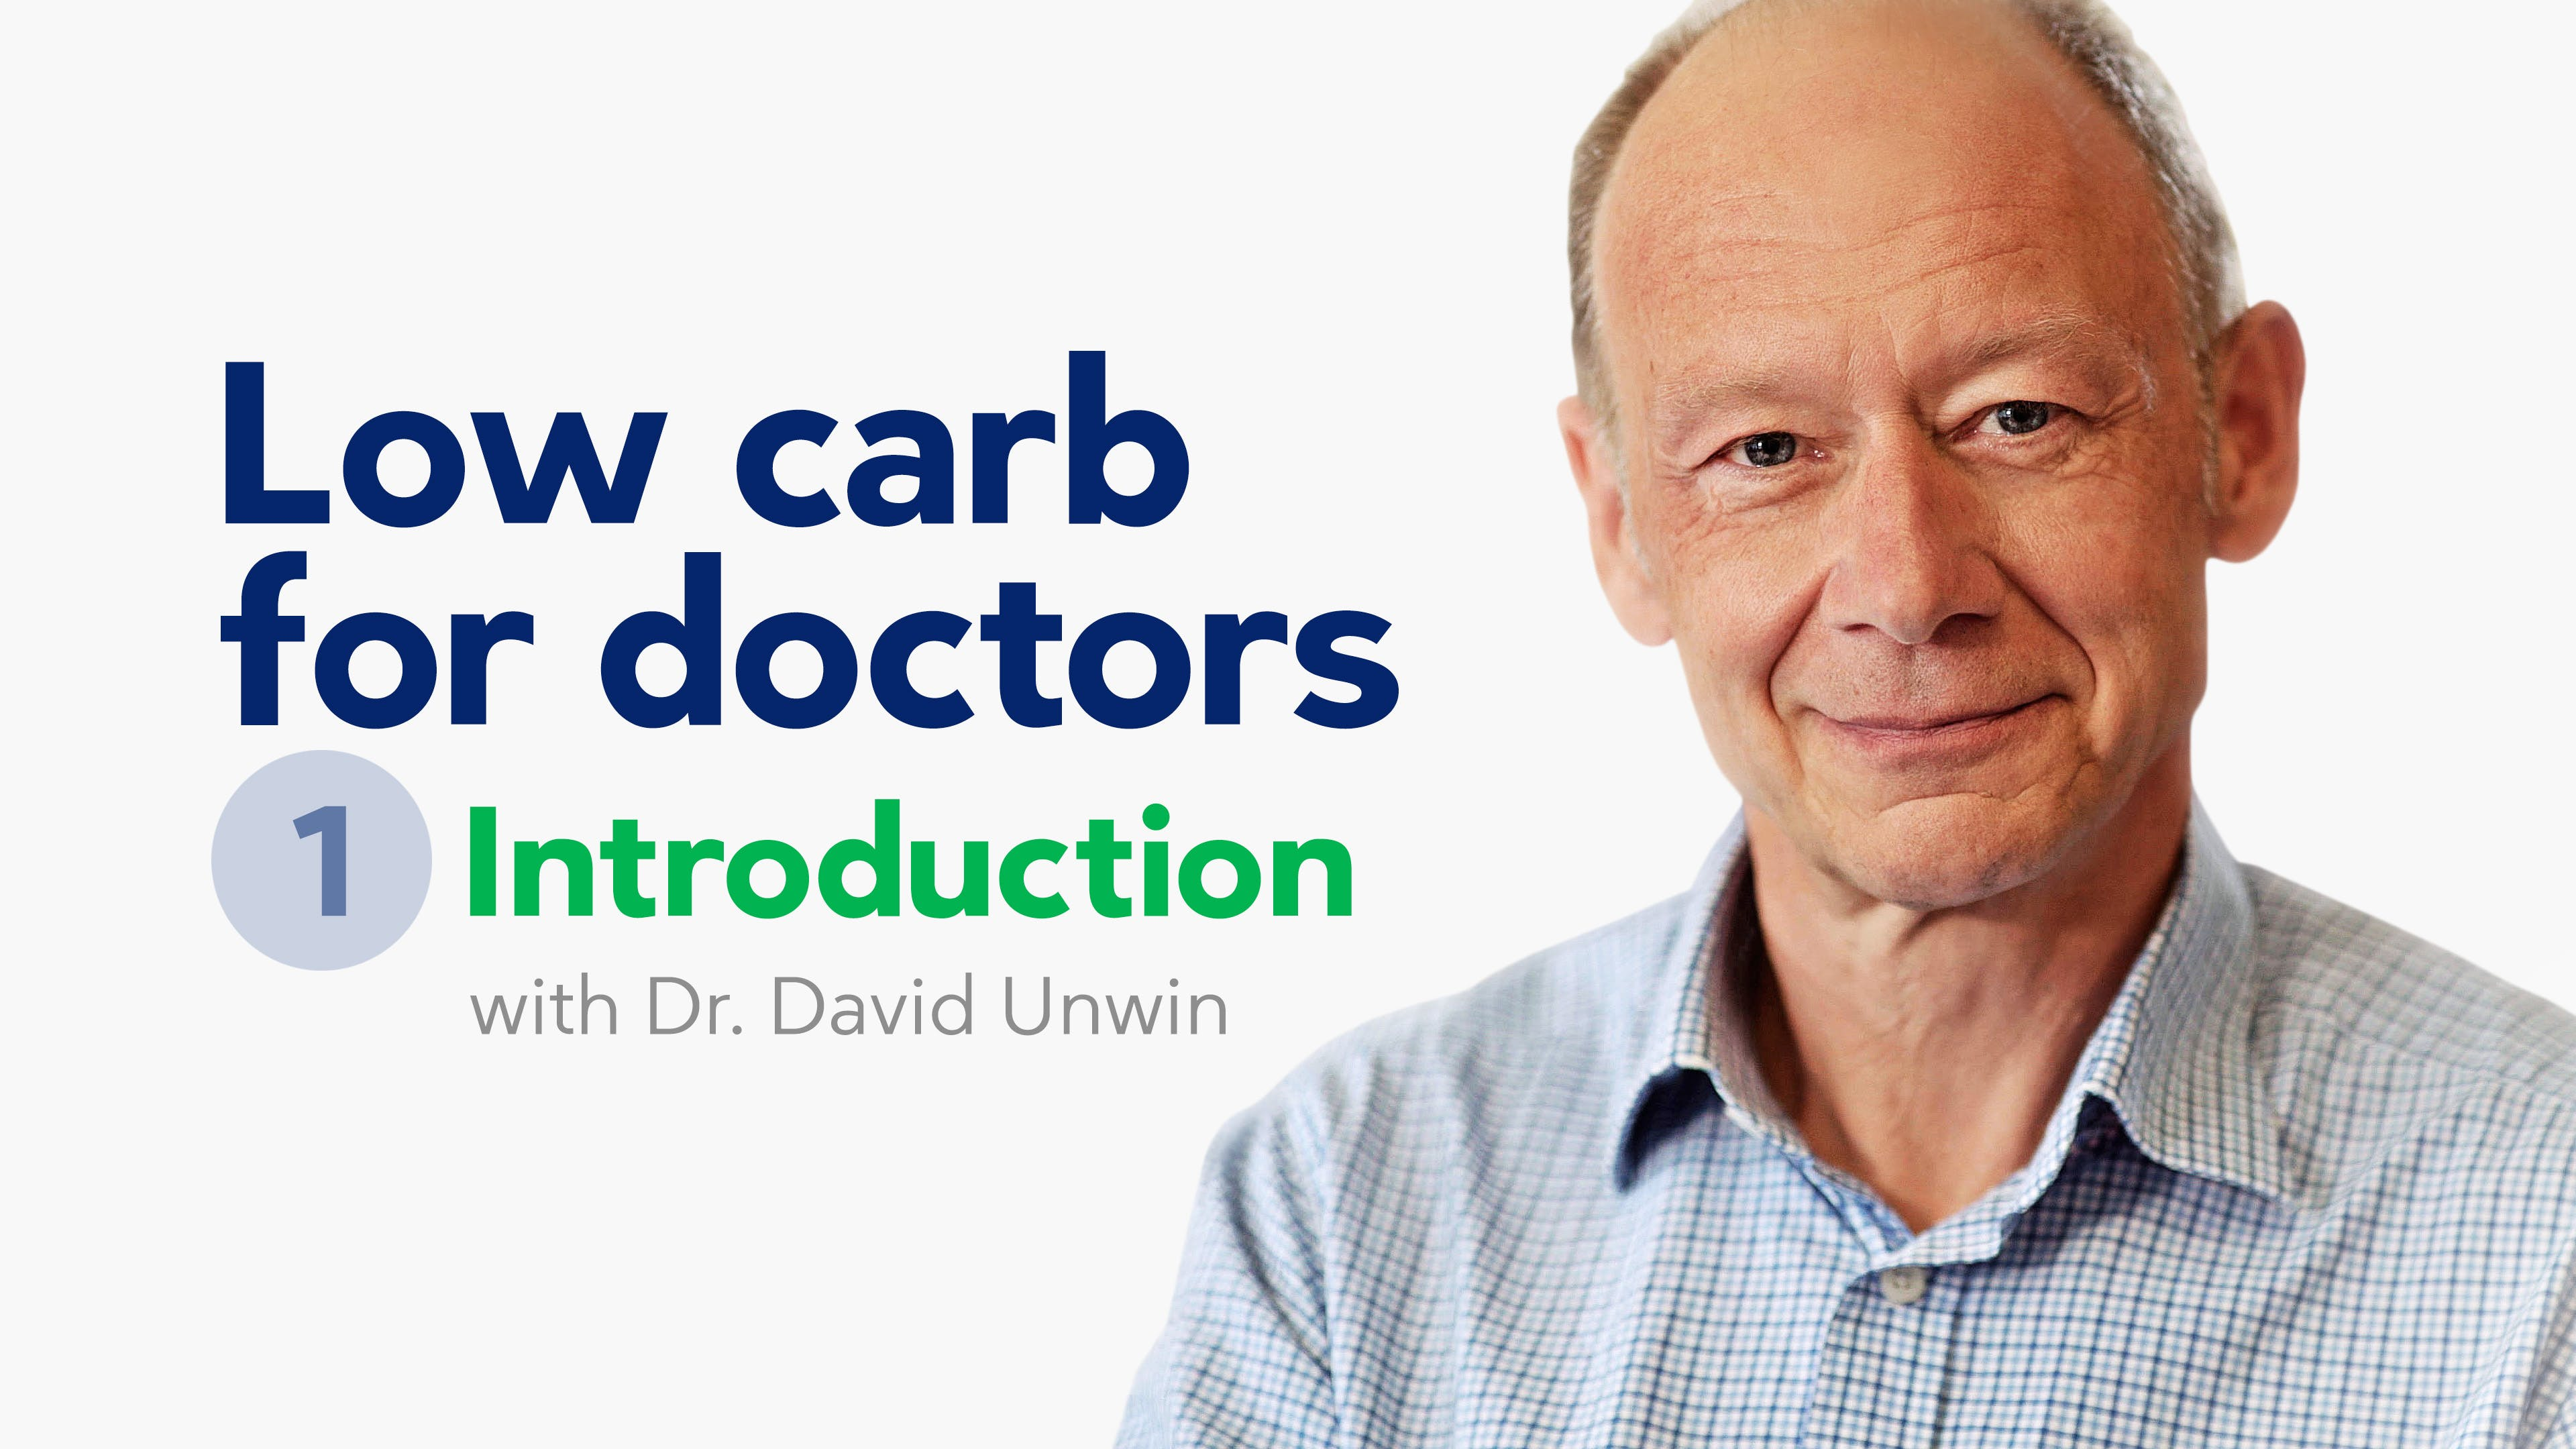 Low carb for doctors – introduction